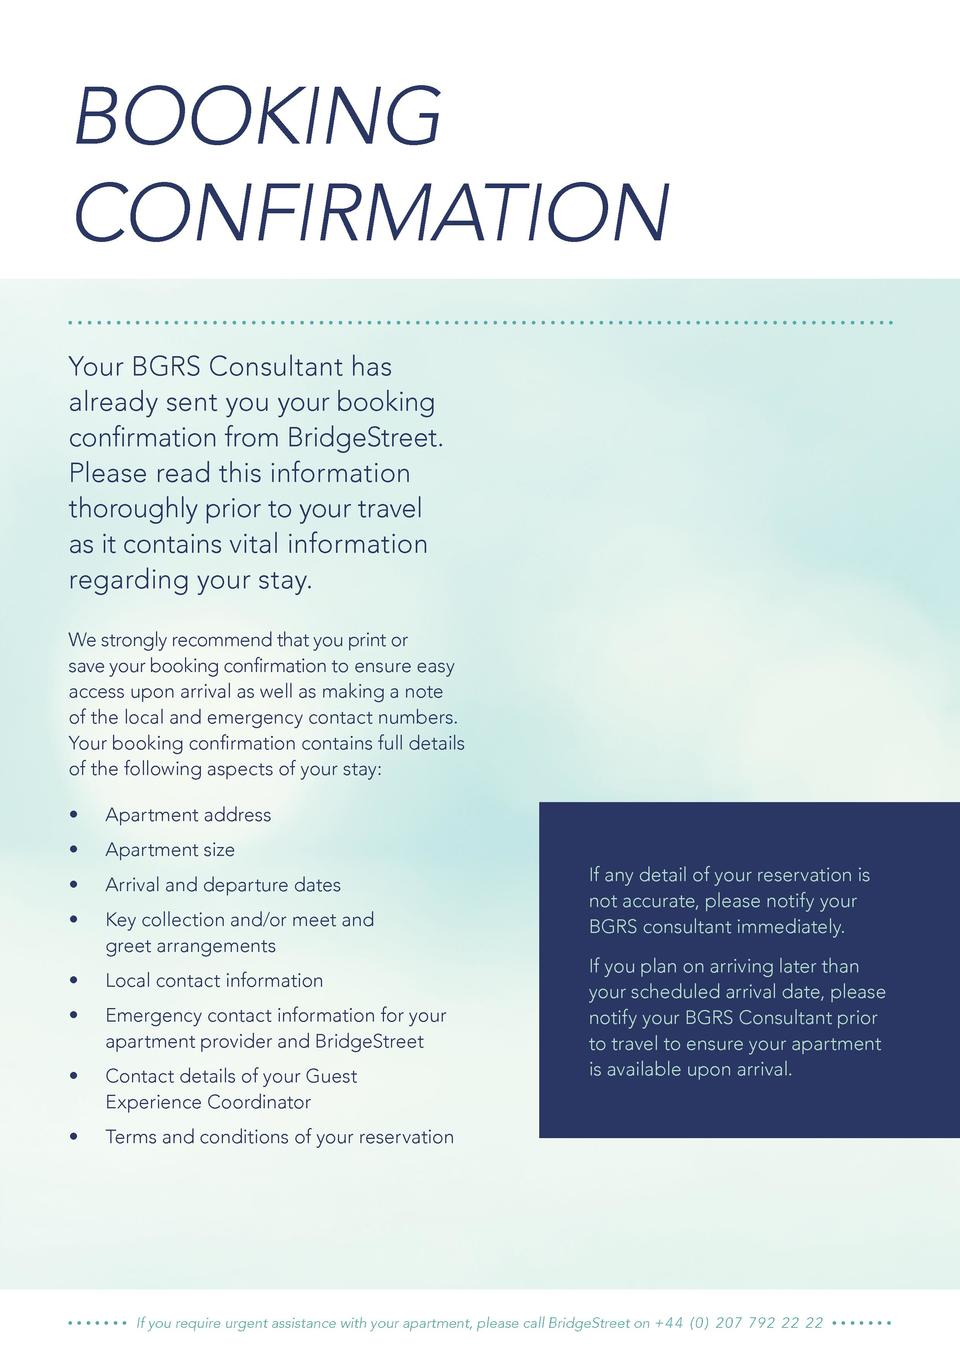 BOOKING CONFIRMATION Your BGRS Consultant has already sent you your booking confirmation from BridgeStreet. Please read th...